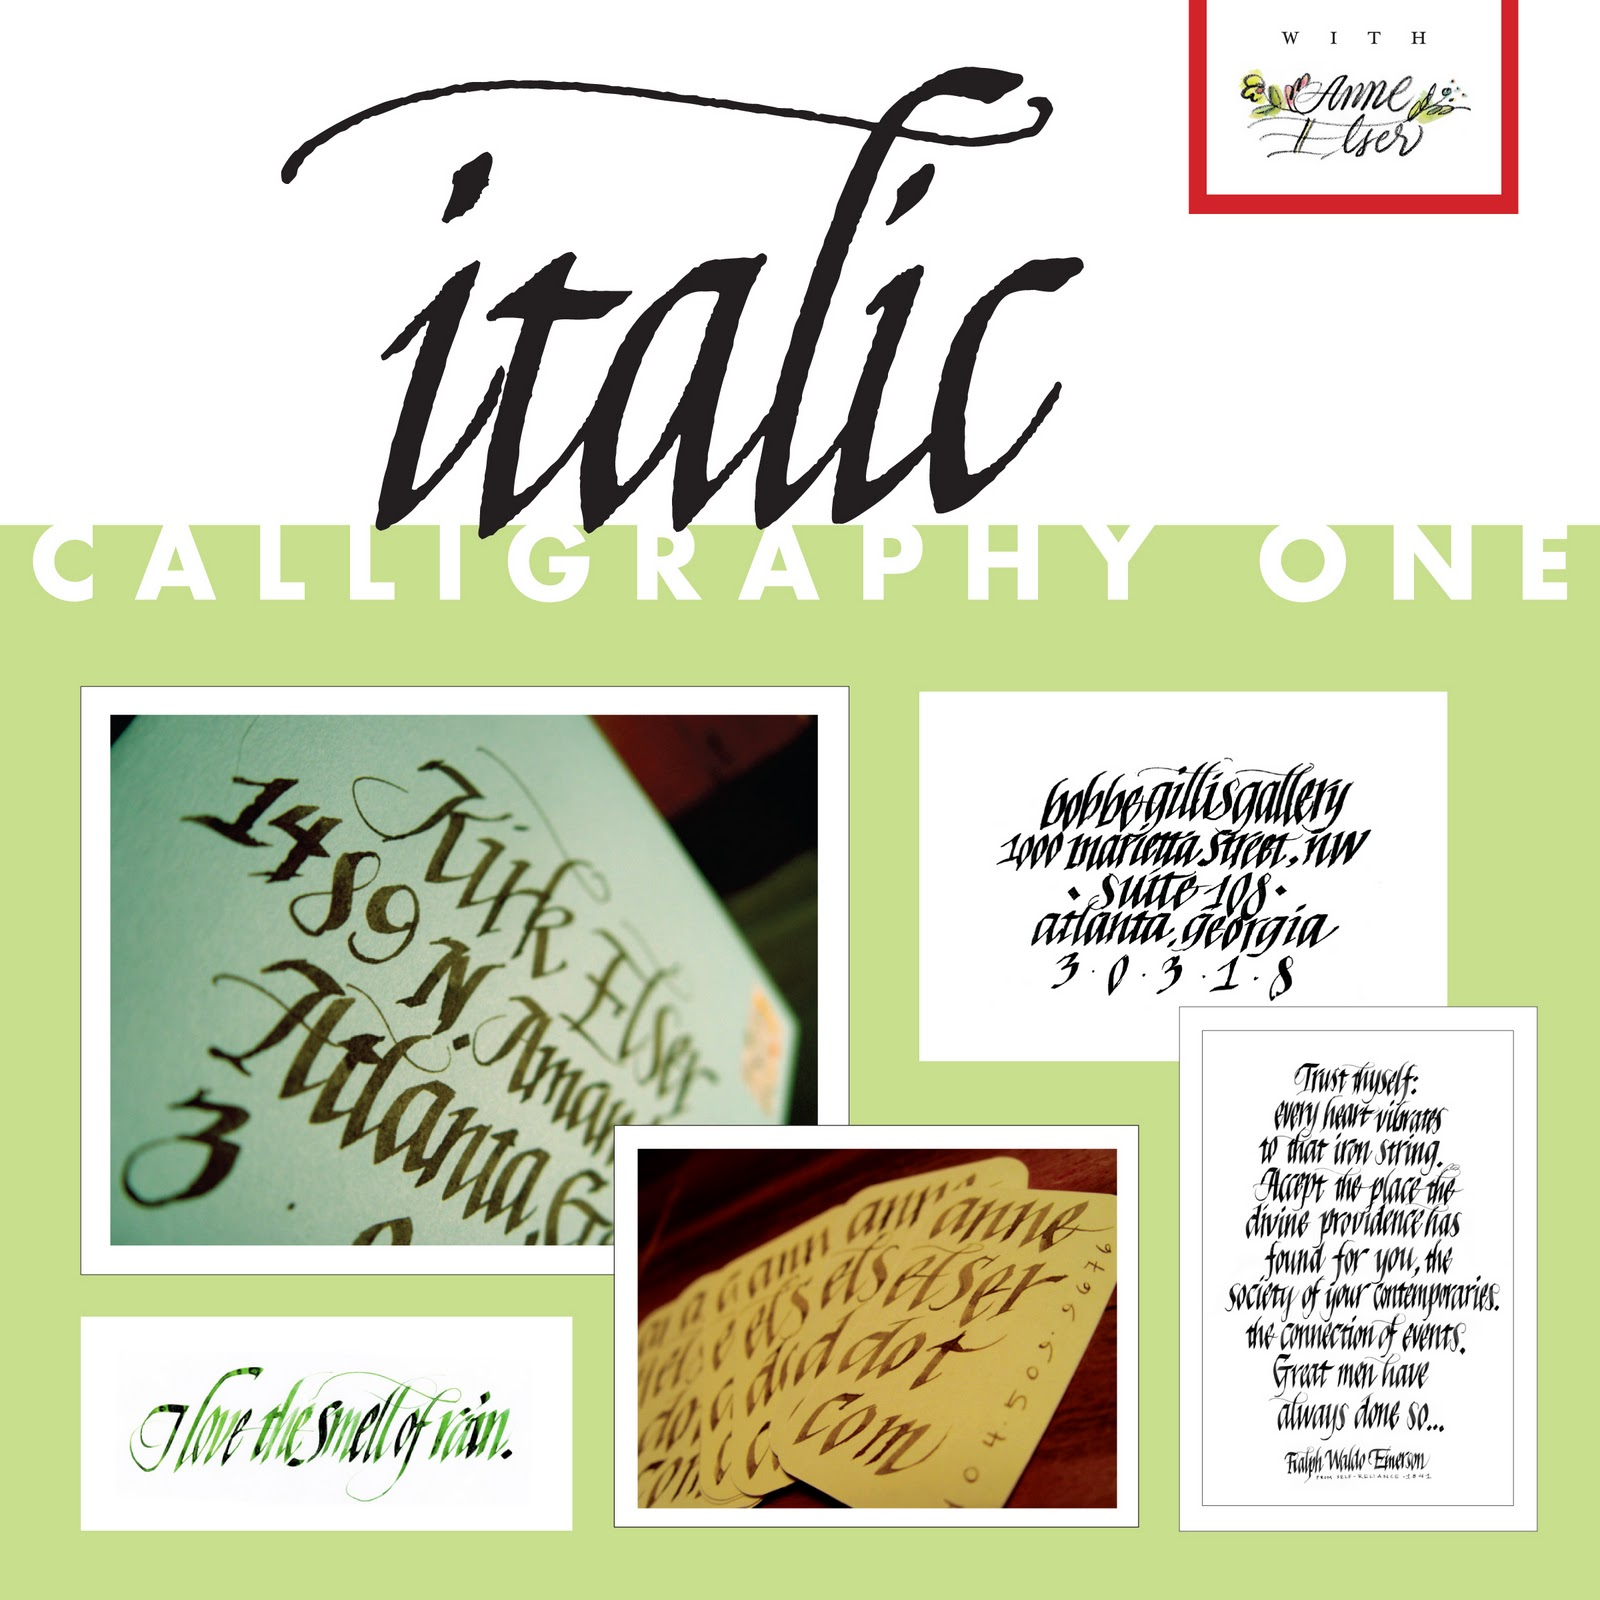 Anne Elser January Italic Calligraphy Bookbinding Classes